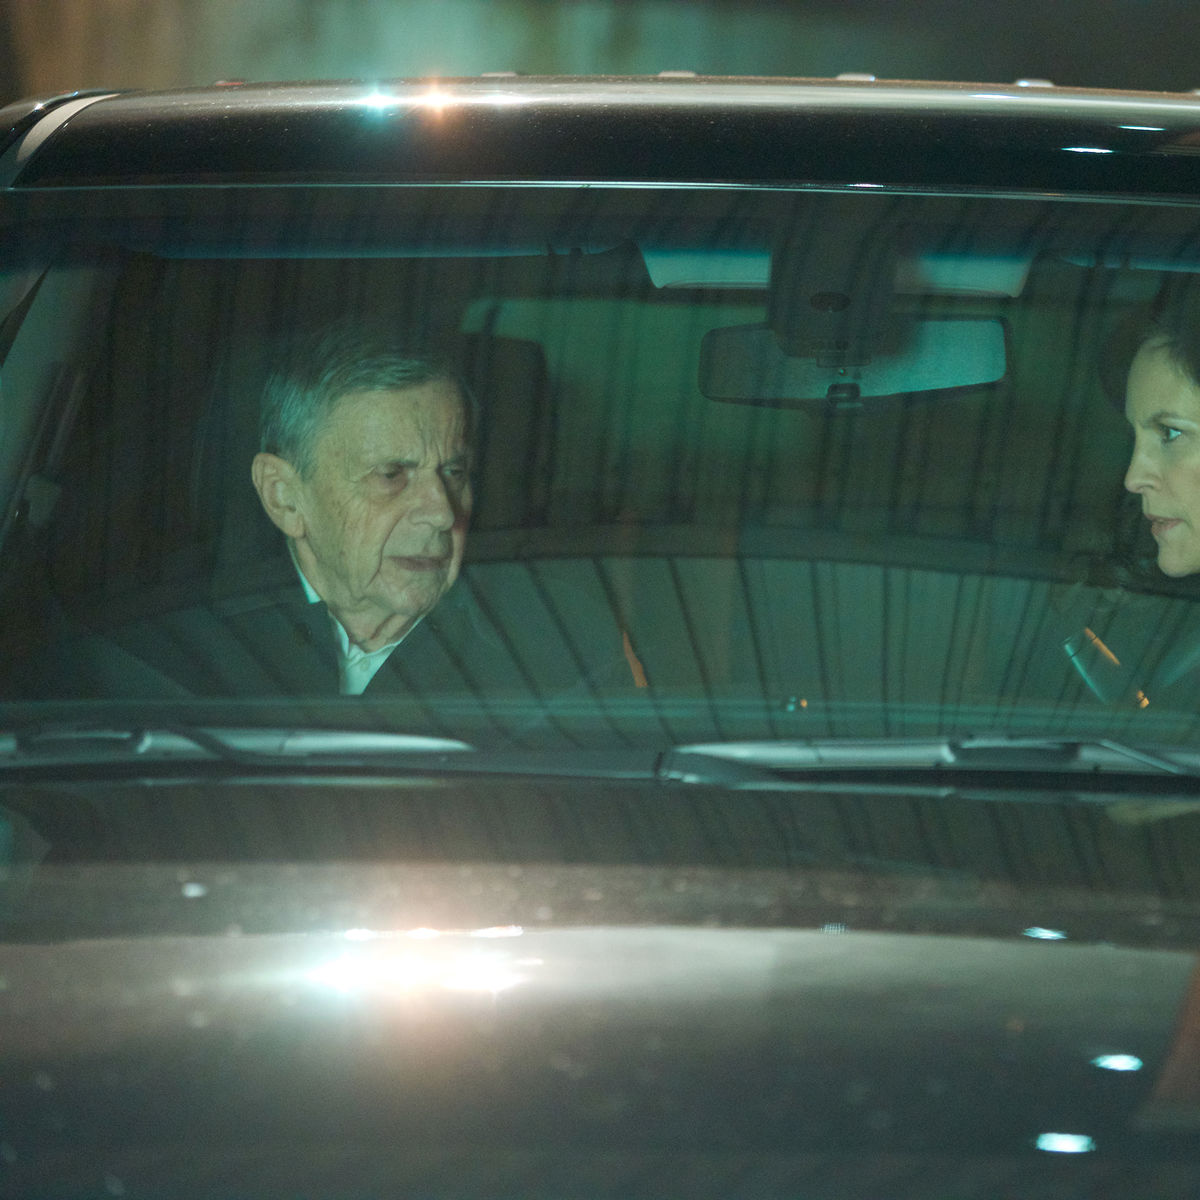 The X-Files episode 1110 - CSM and Reyes in a car